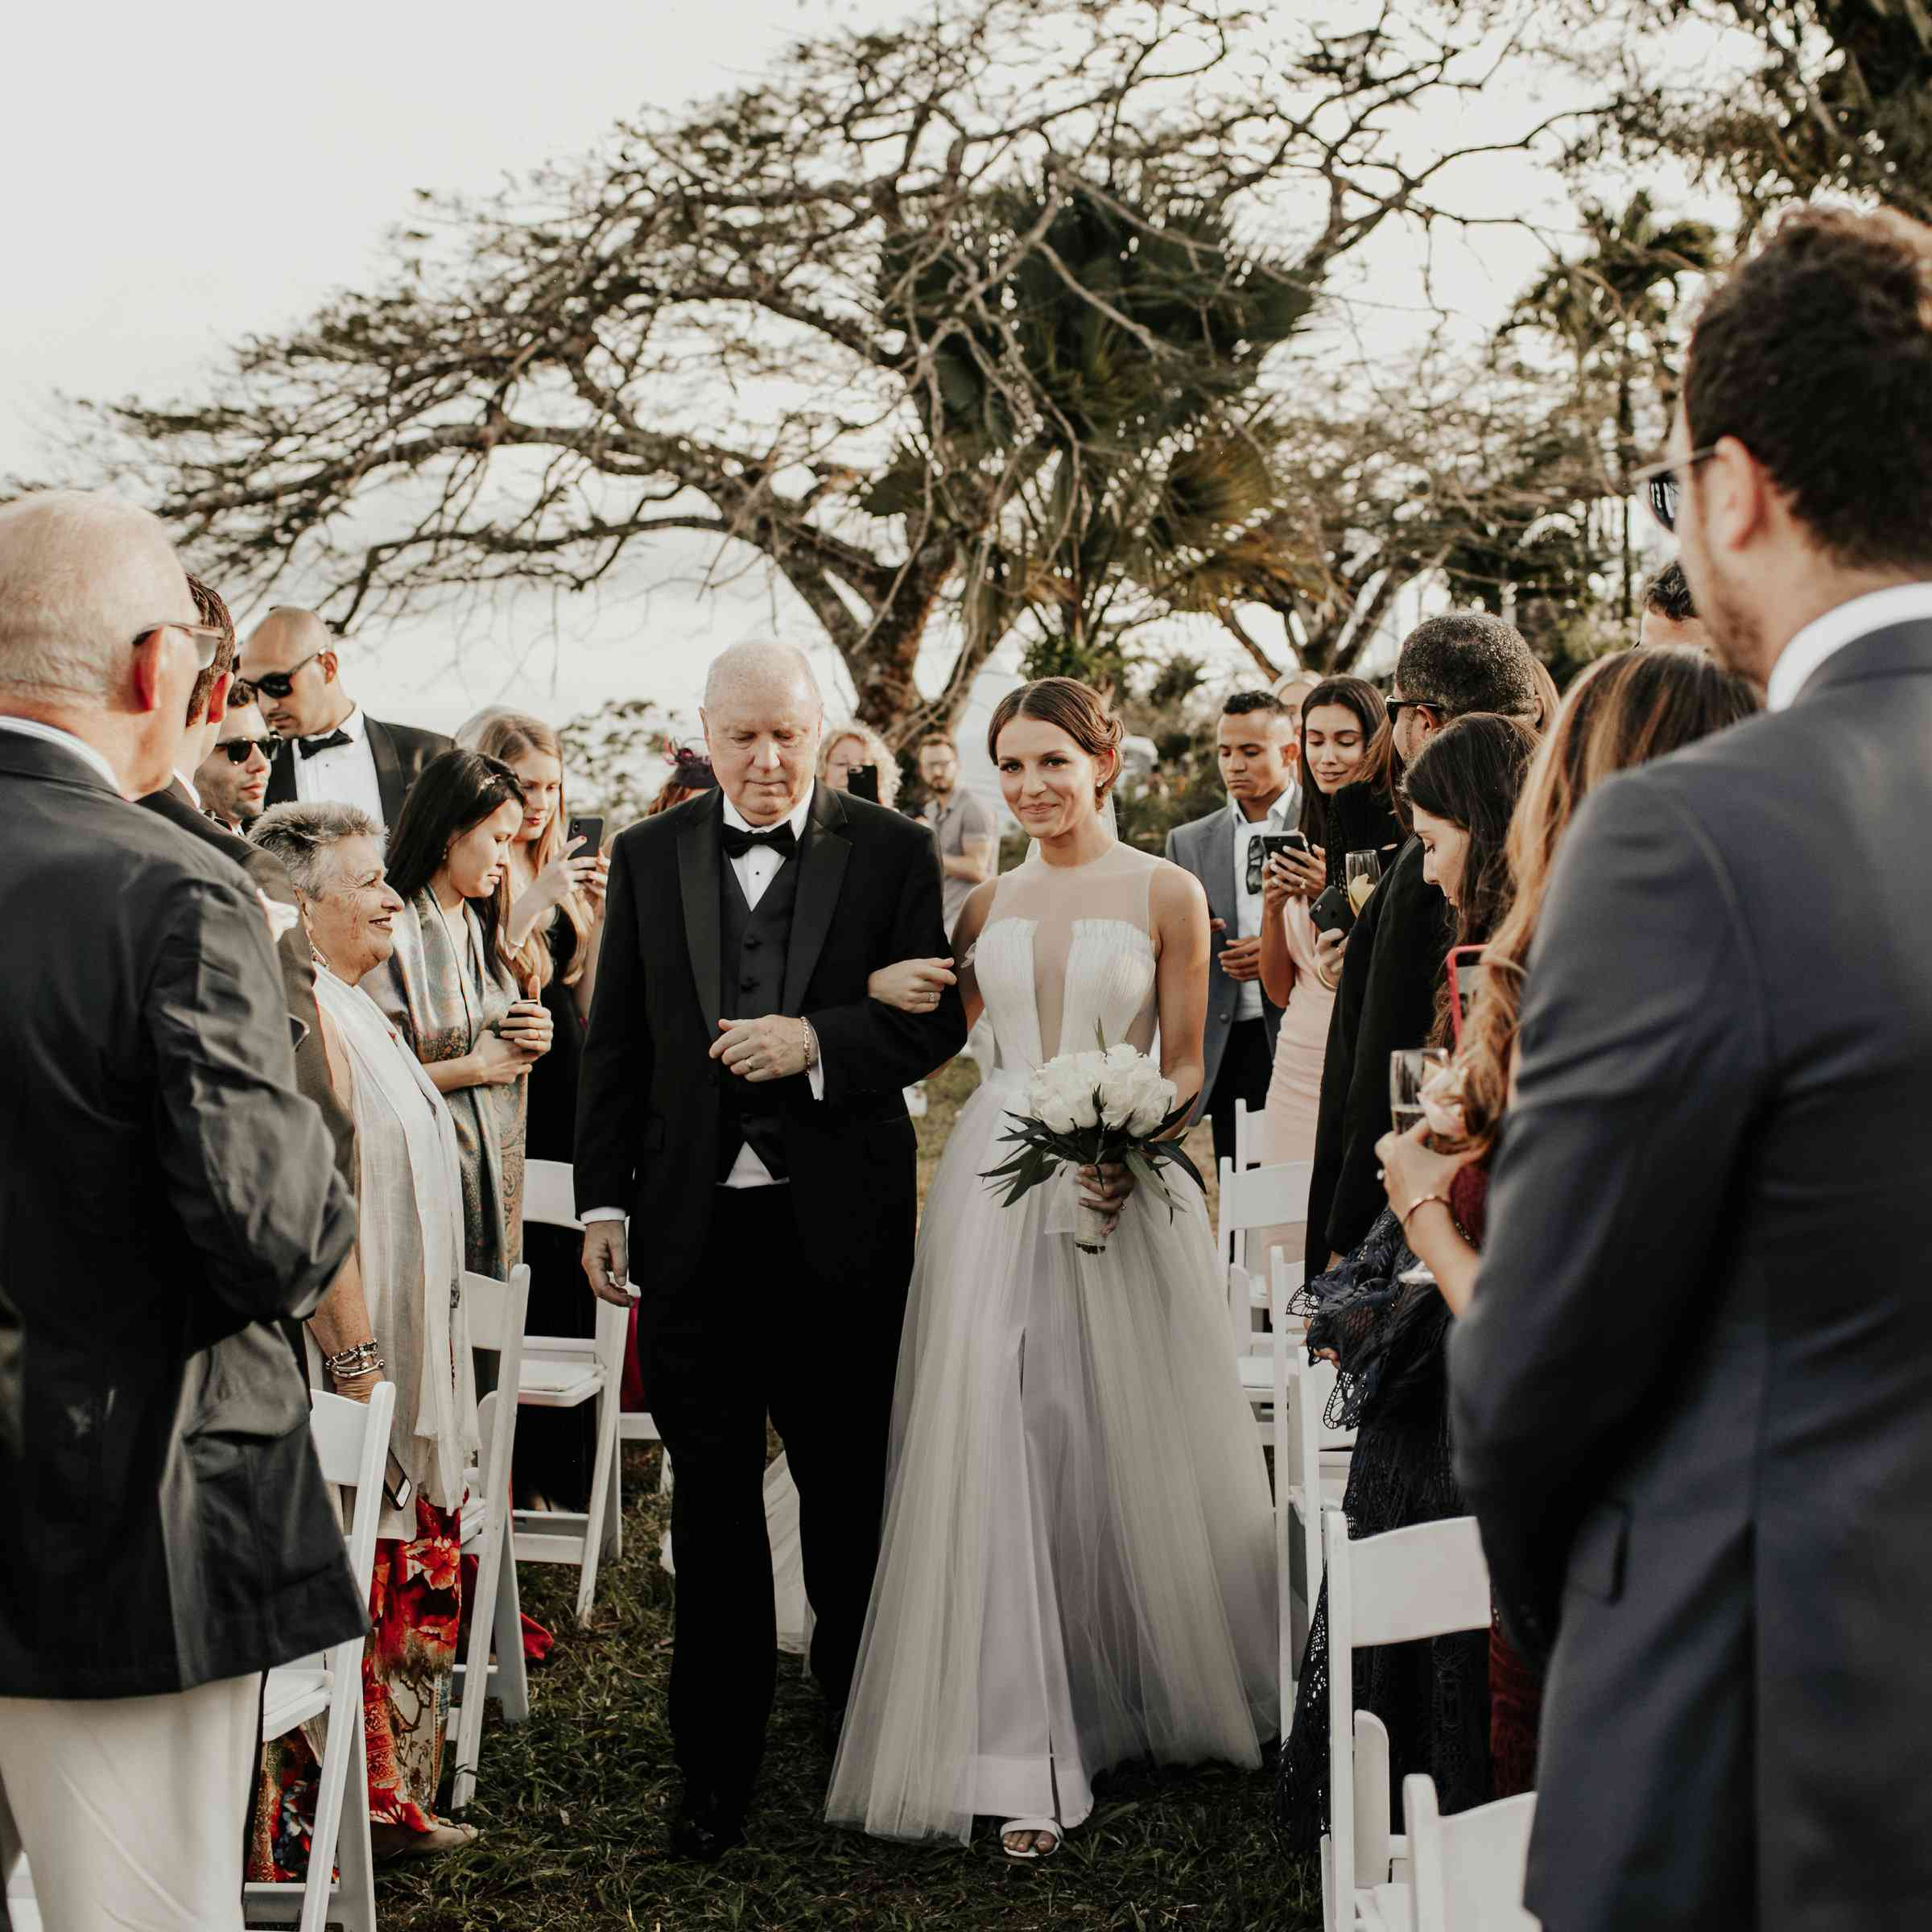 father walking bride down the aisle